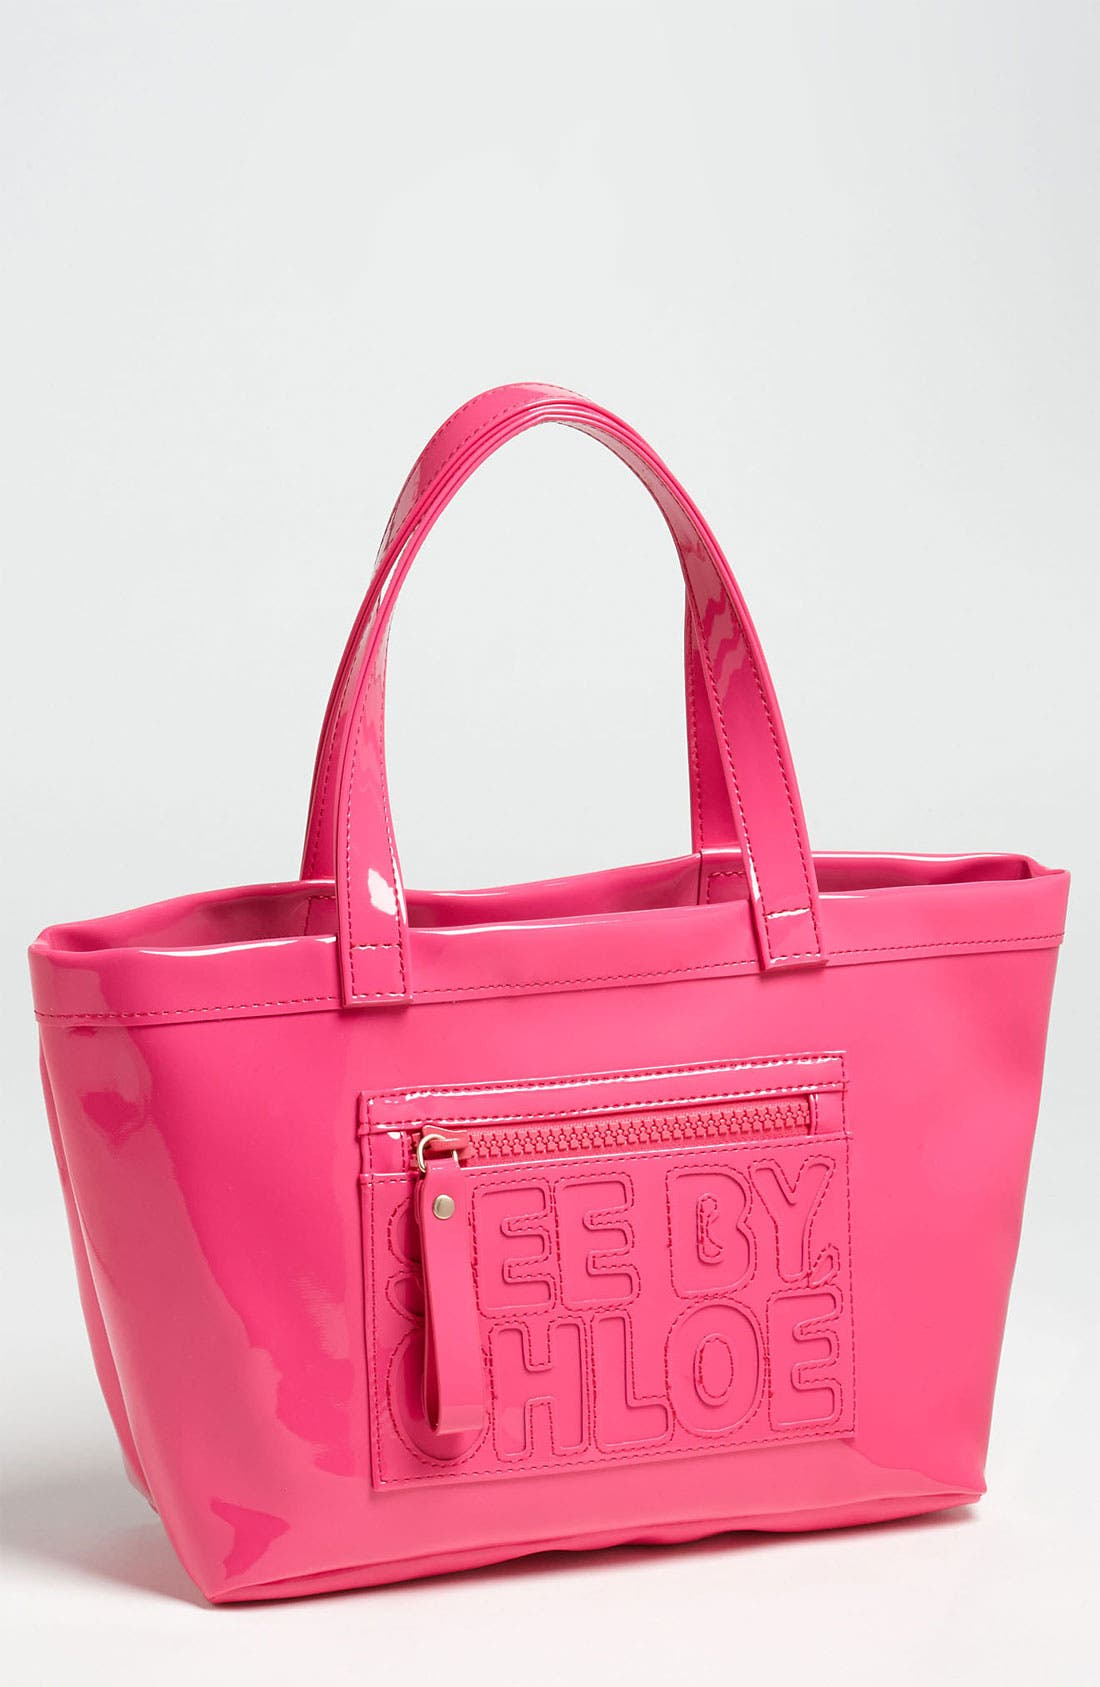 Main Image - See by Chloé 'Zip File - Small' Tote